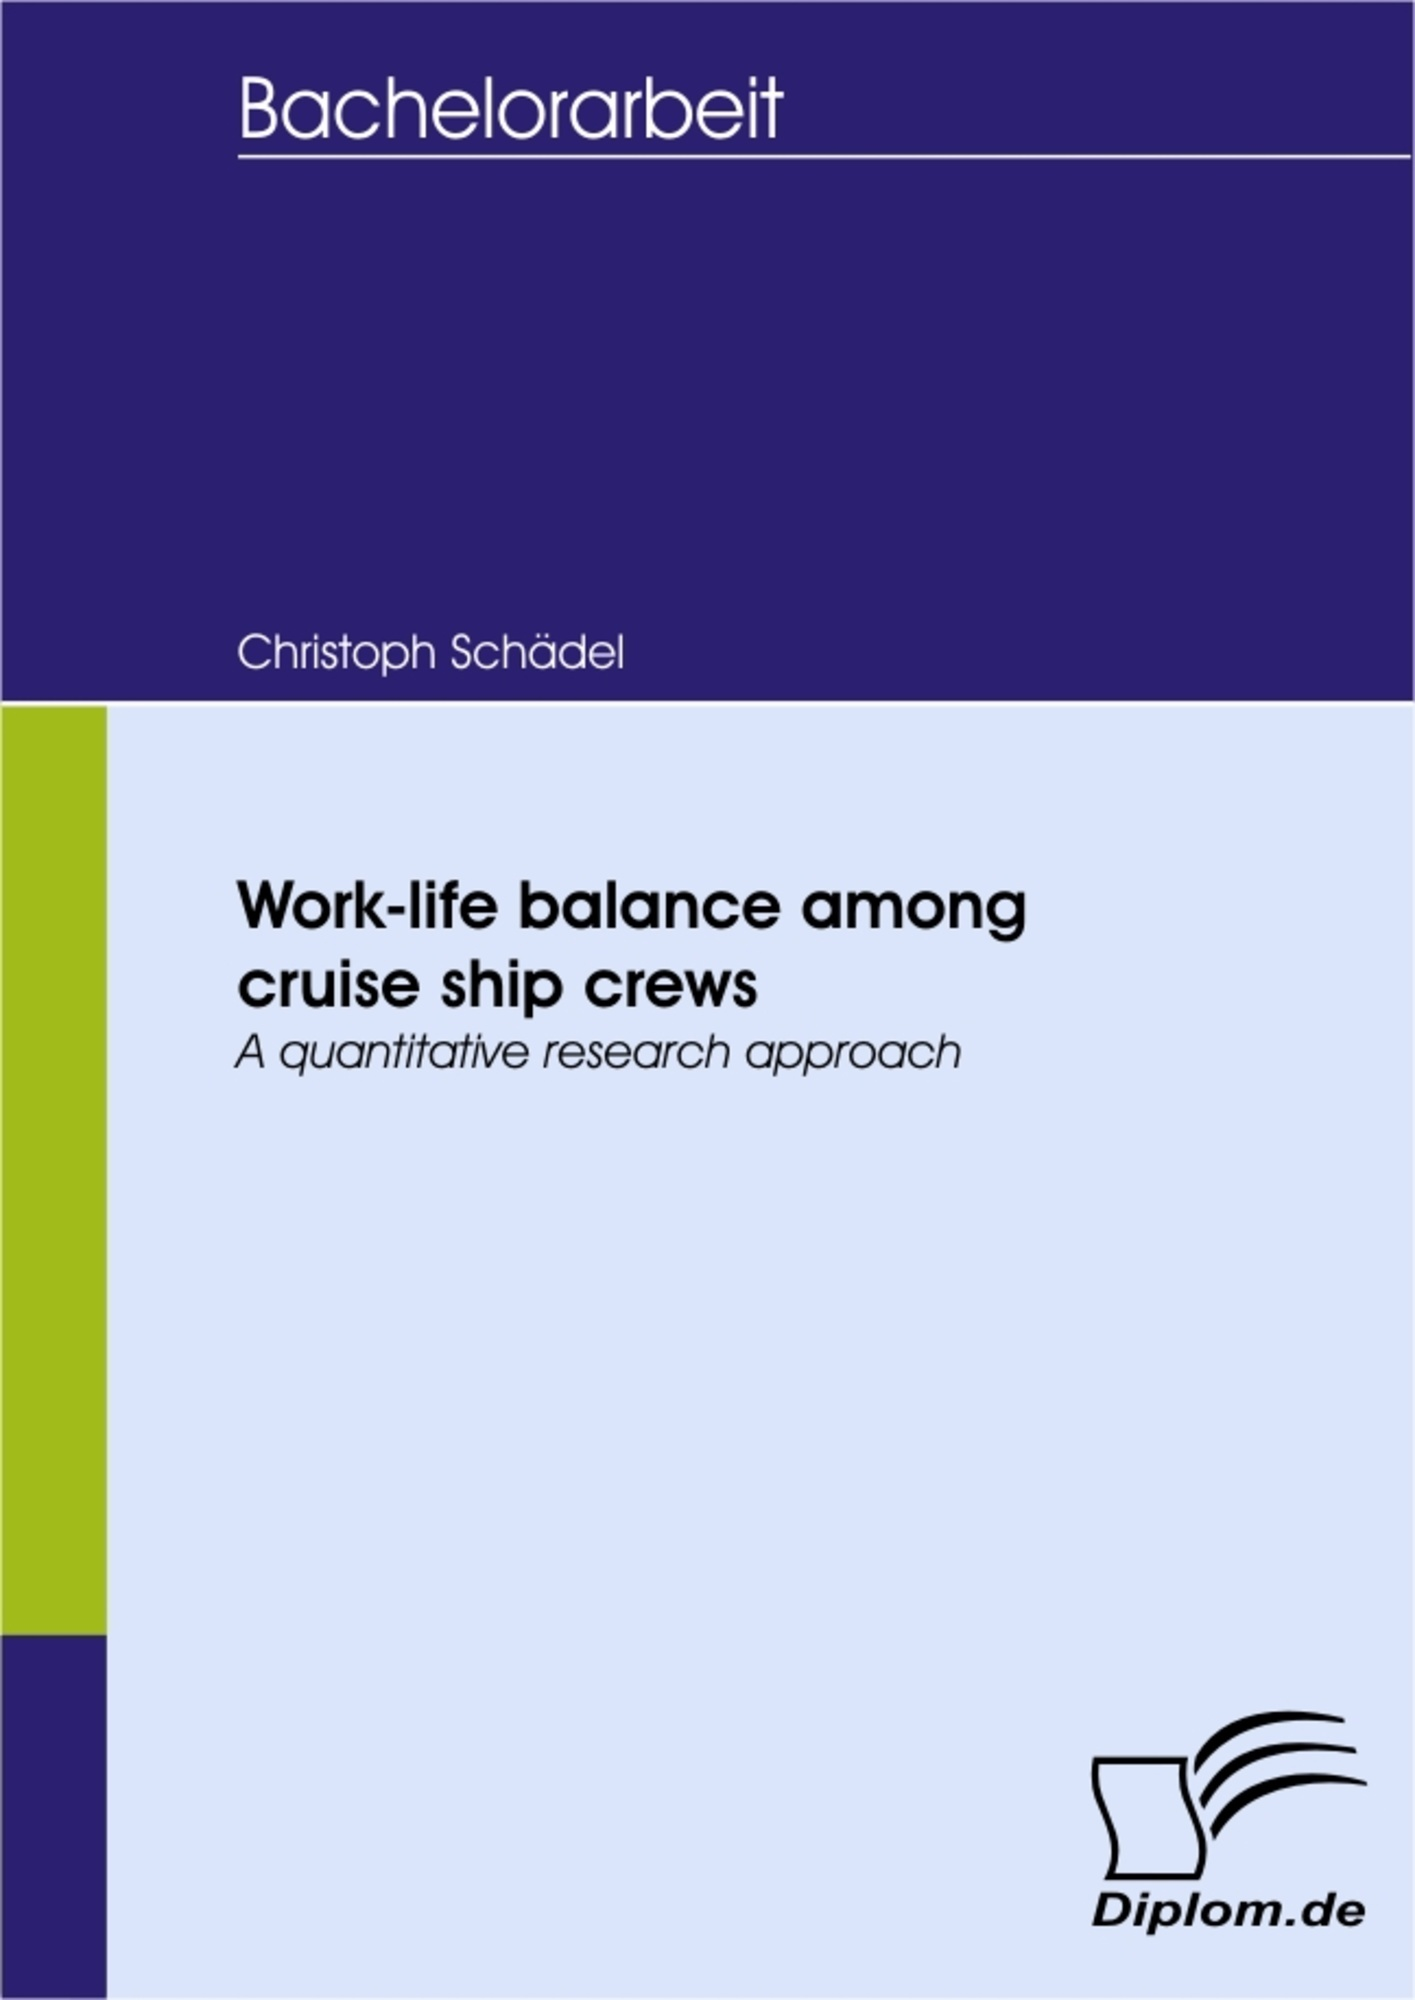 Work-life balance among cruise ship crews